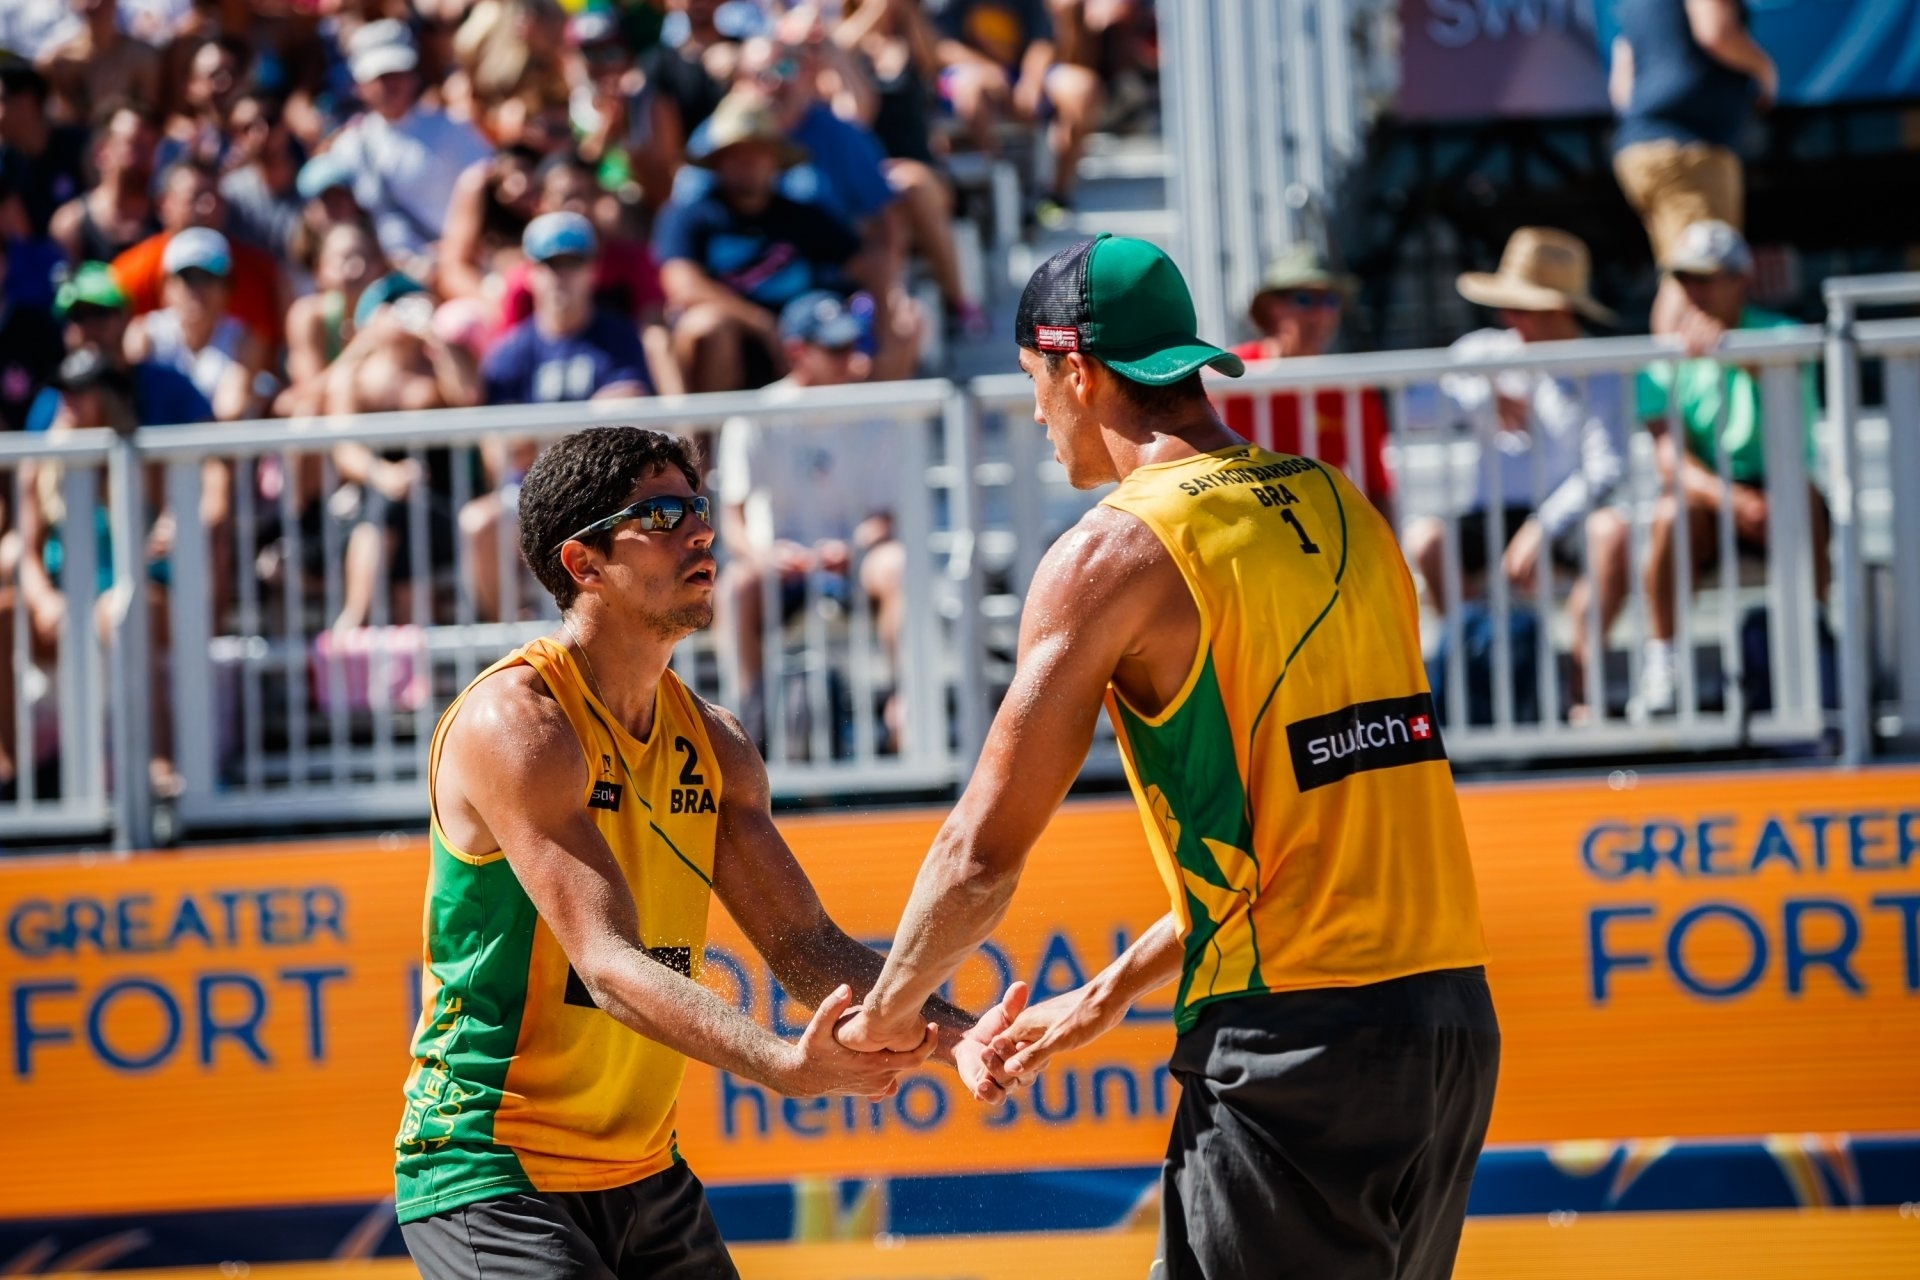 Alvaro and Saymon were in superb form to win the men's gold medal in Rio